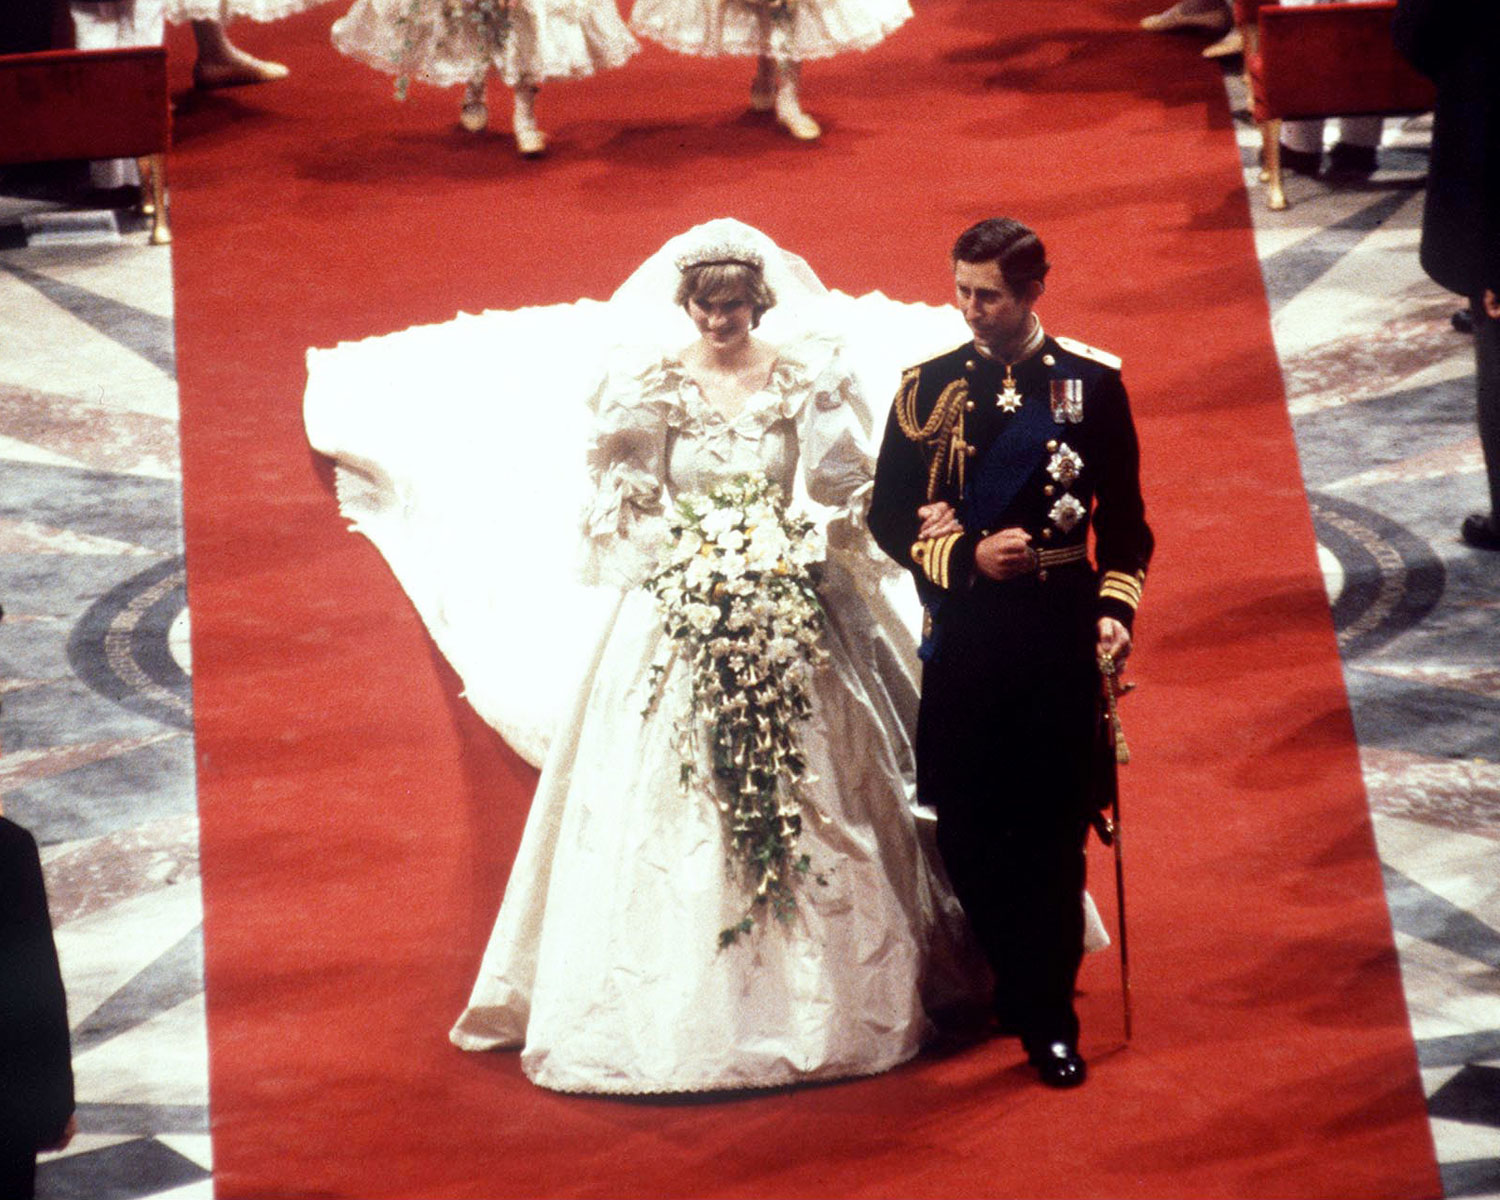 Charles And Diana Wedding.Royal Wedding Princess Diana Charles 1500 The Knot News